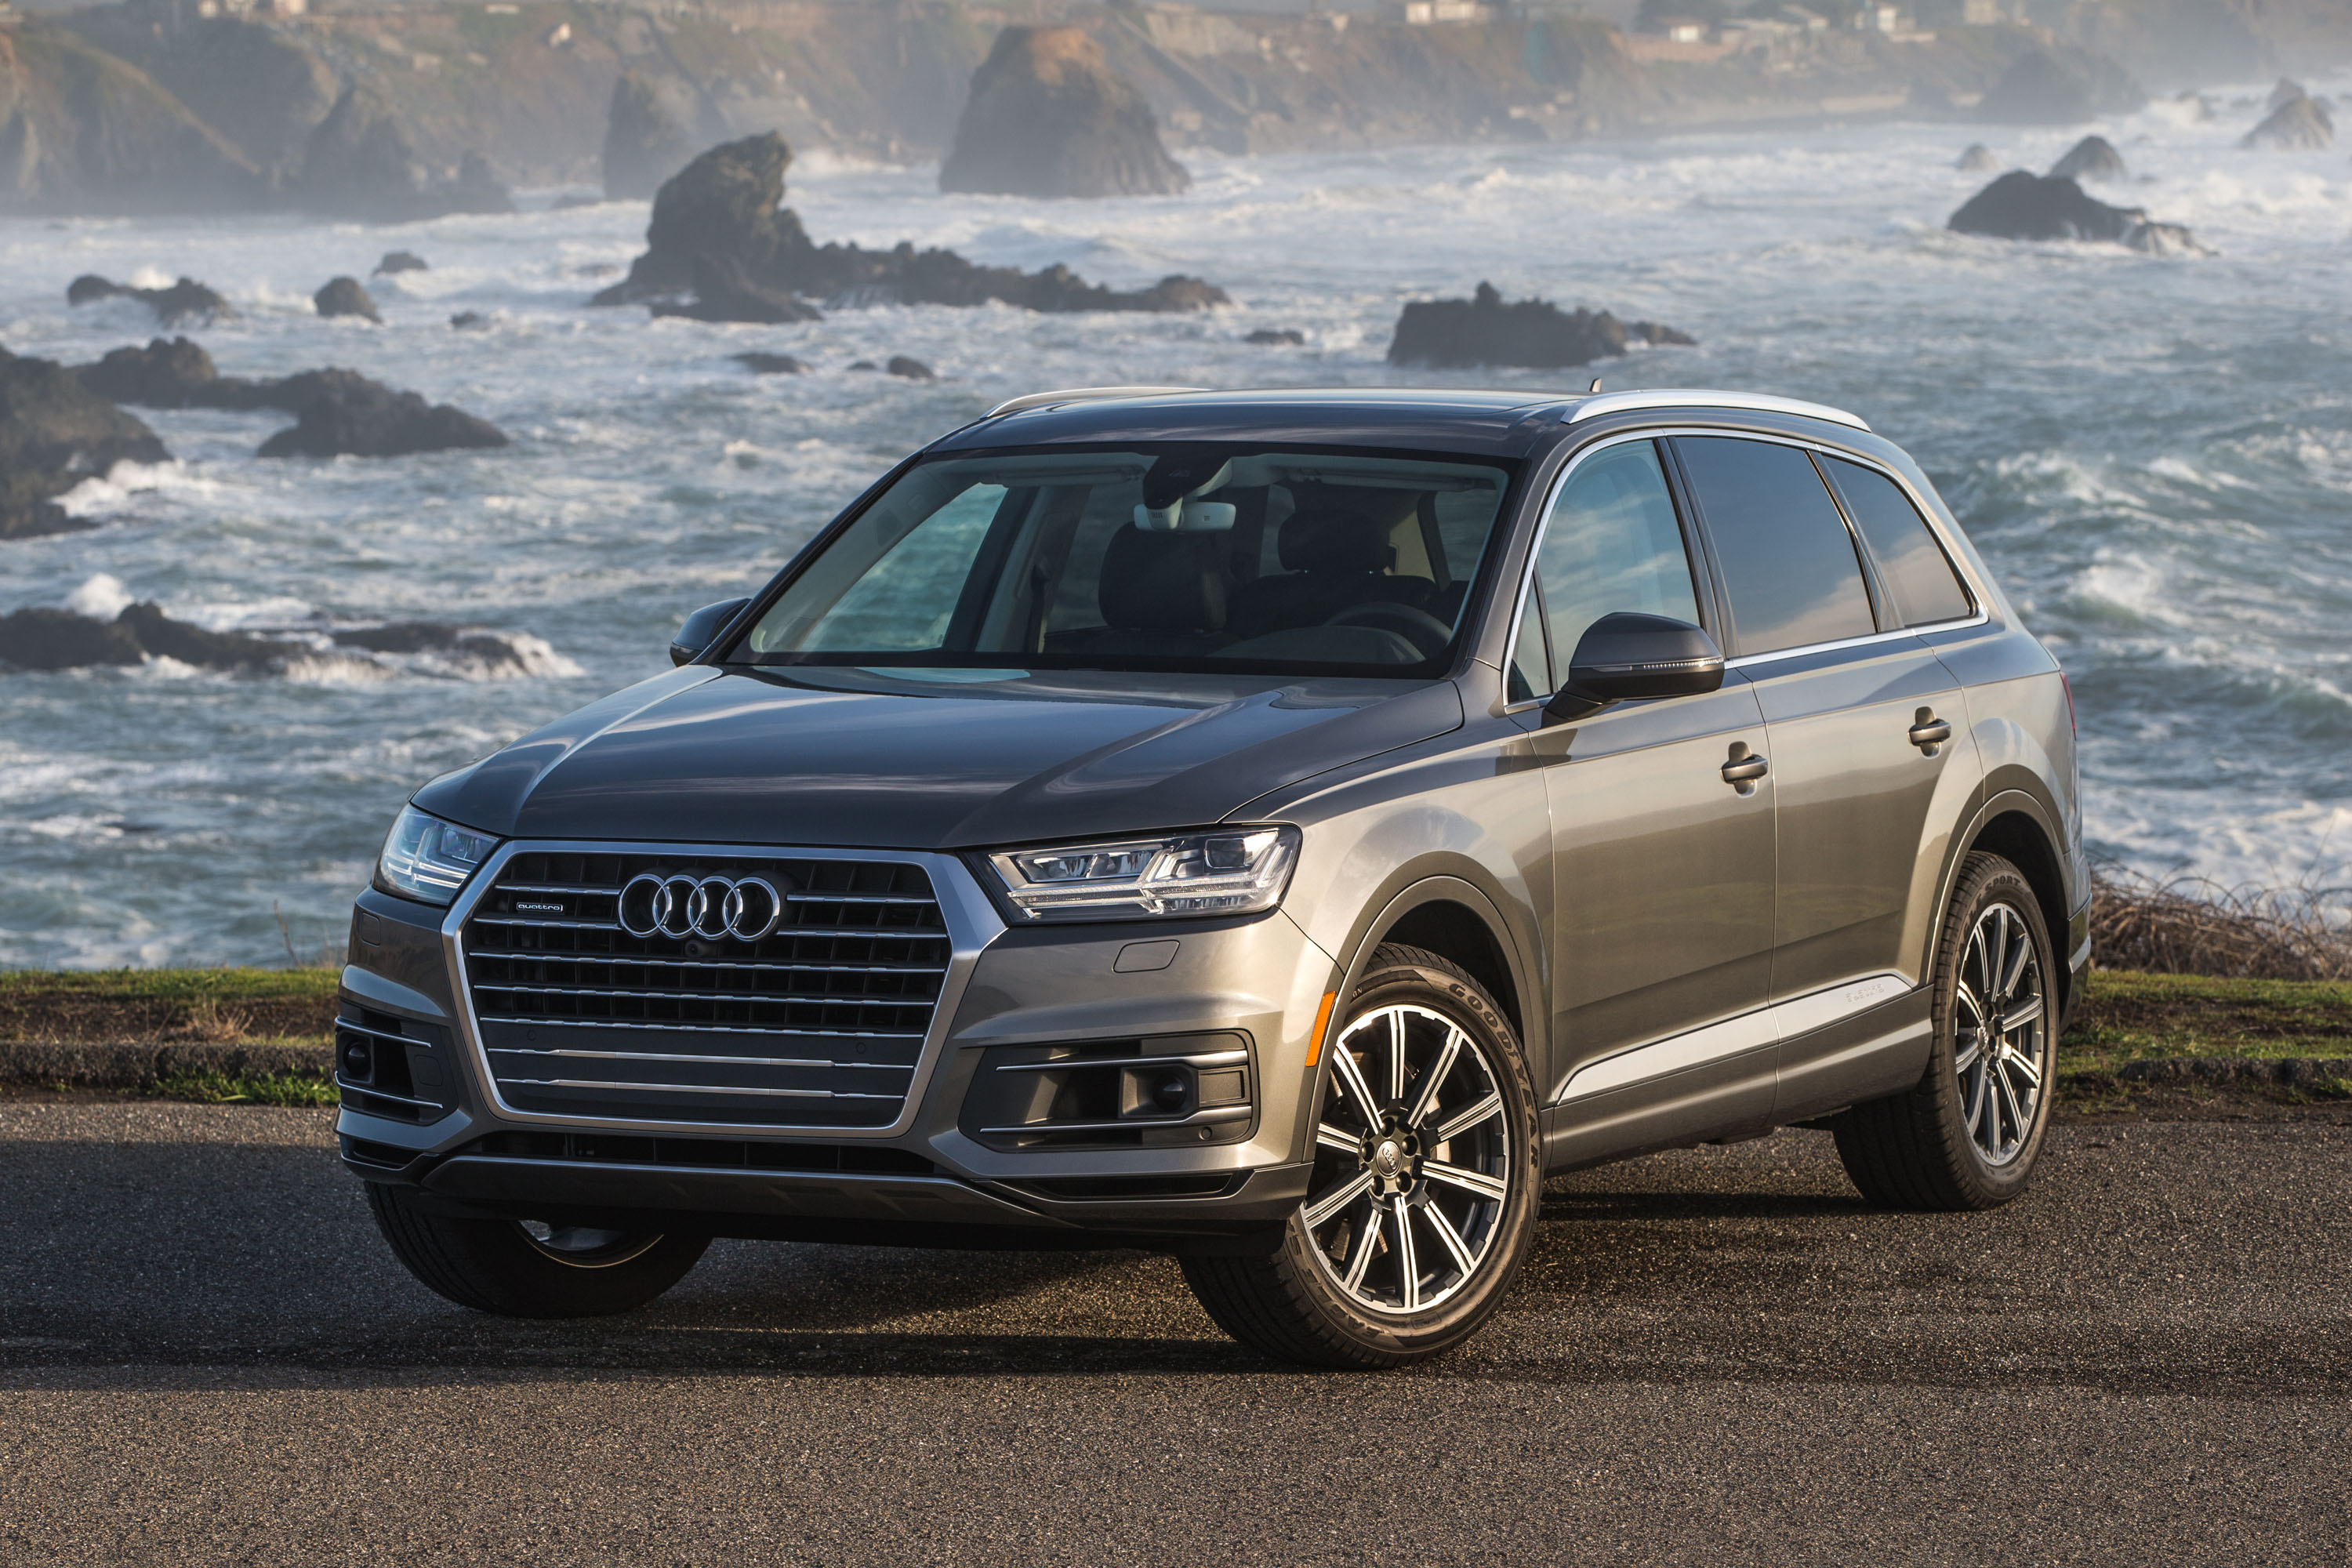 Used Cars Jacksonville >> 2018 Audi Q7 Premium Plus First Drive Review